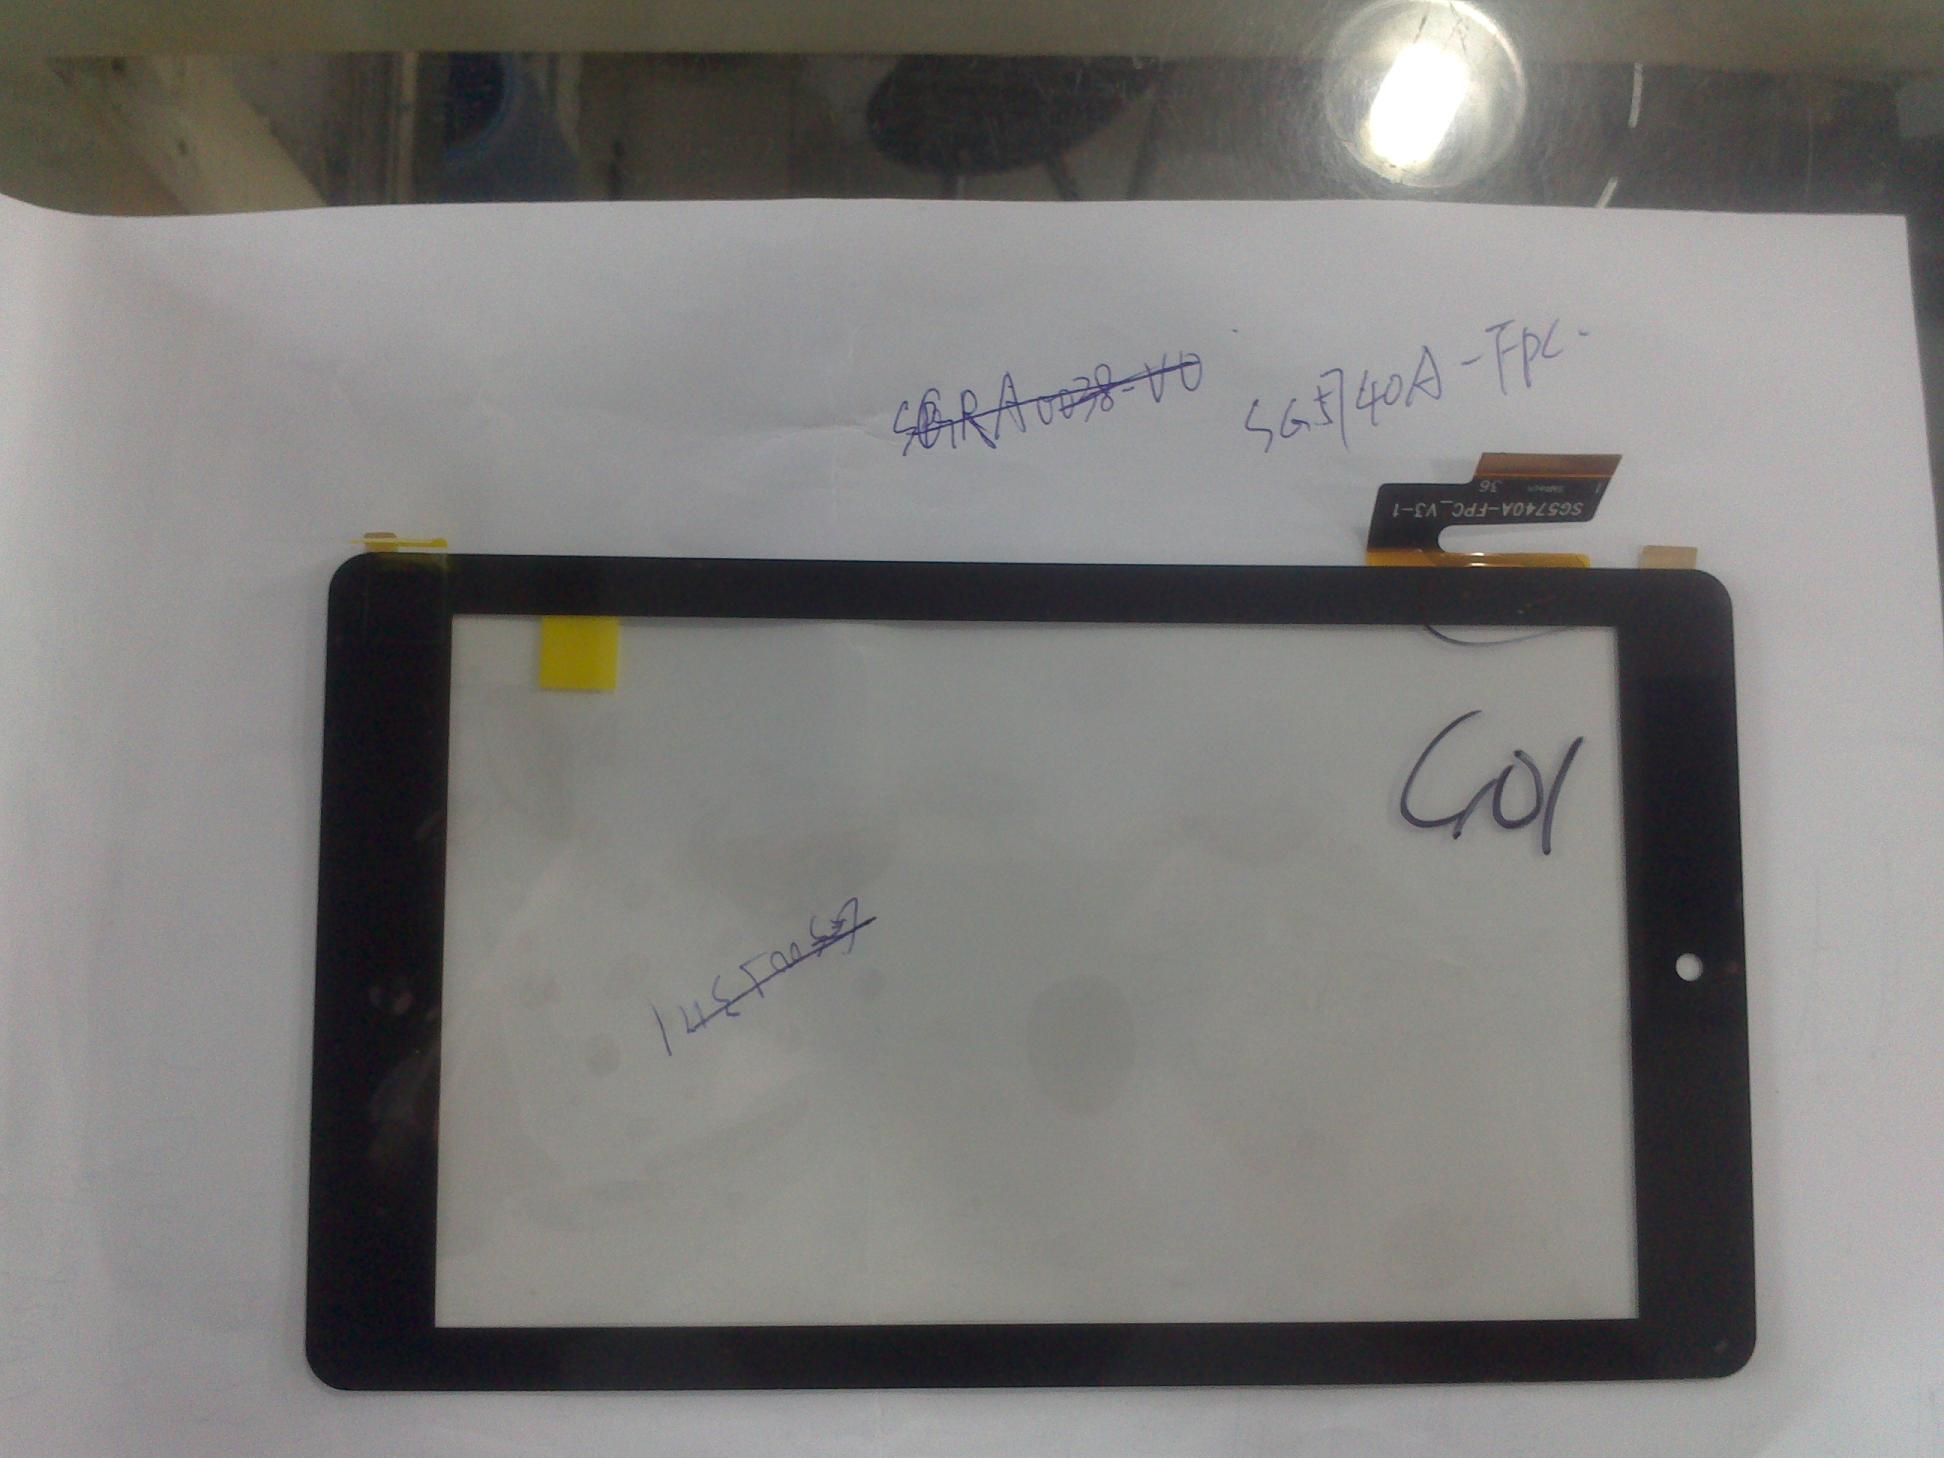 Запчасти для мобильных телефонов 7 inch new handwriting Tablet capacitive touch screen screen screen number is sg5740a/fpc_v3/1  SG5740A-FPC_V3-1 for nomi c10102 10 1 inch touch screen tablet computer multi touch capacitive panel handwriting screen rp 400a 10 1 fpc a3